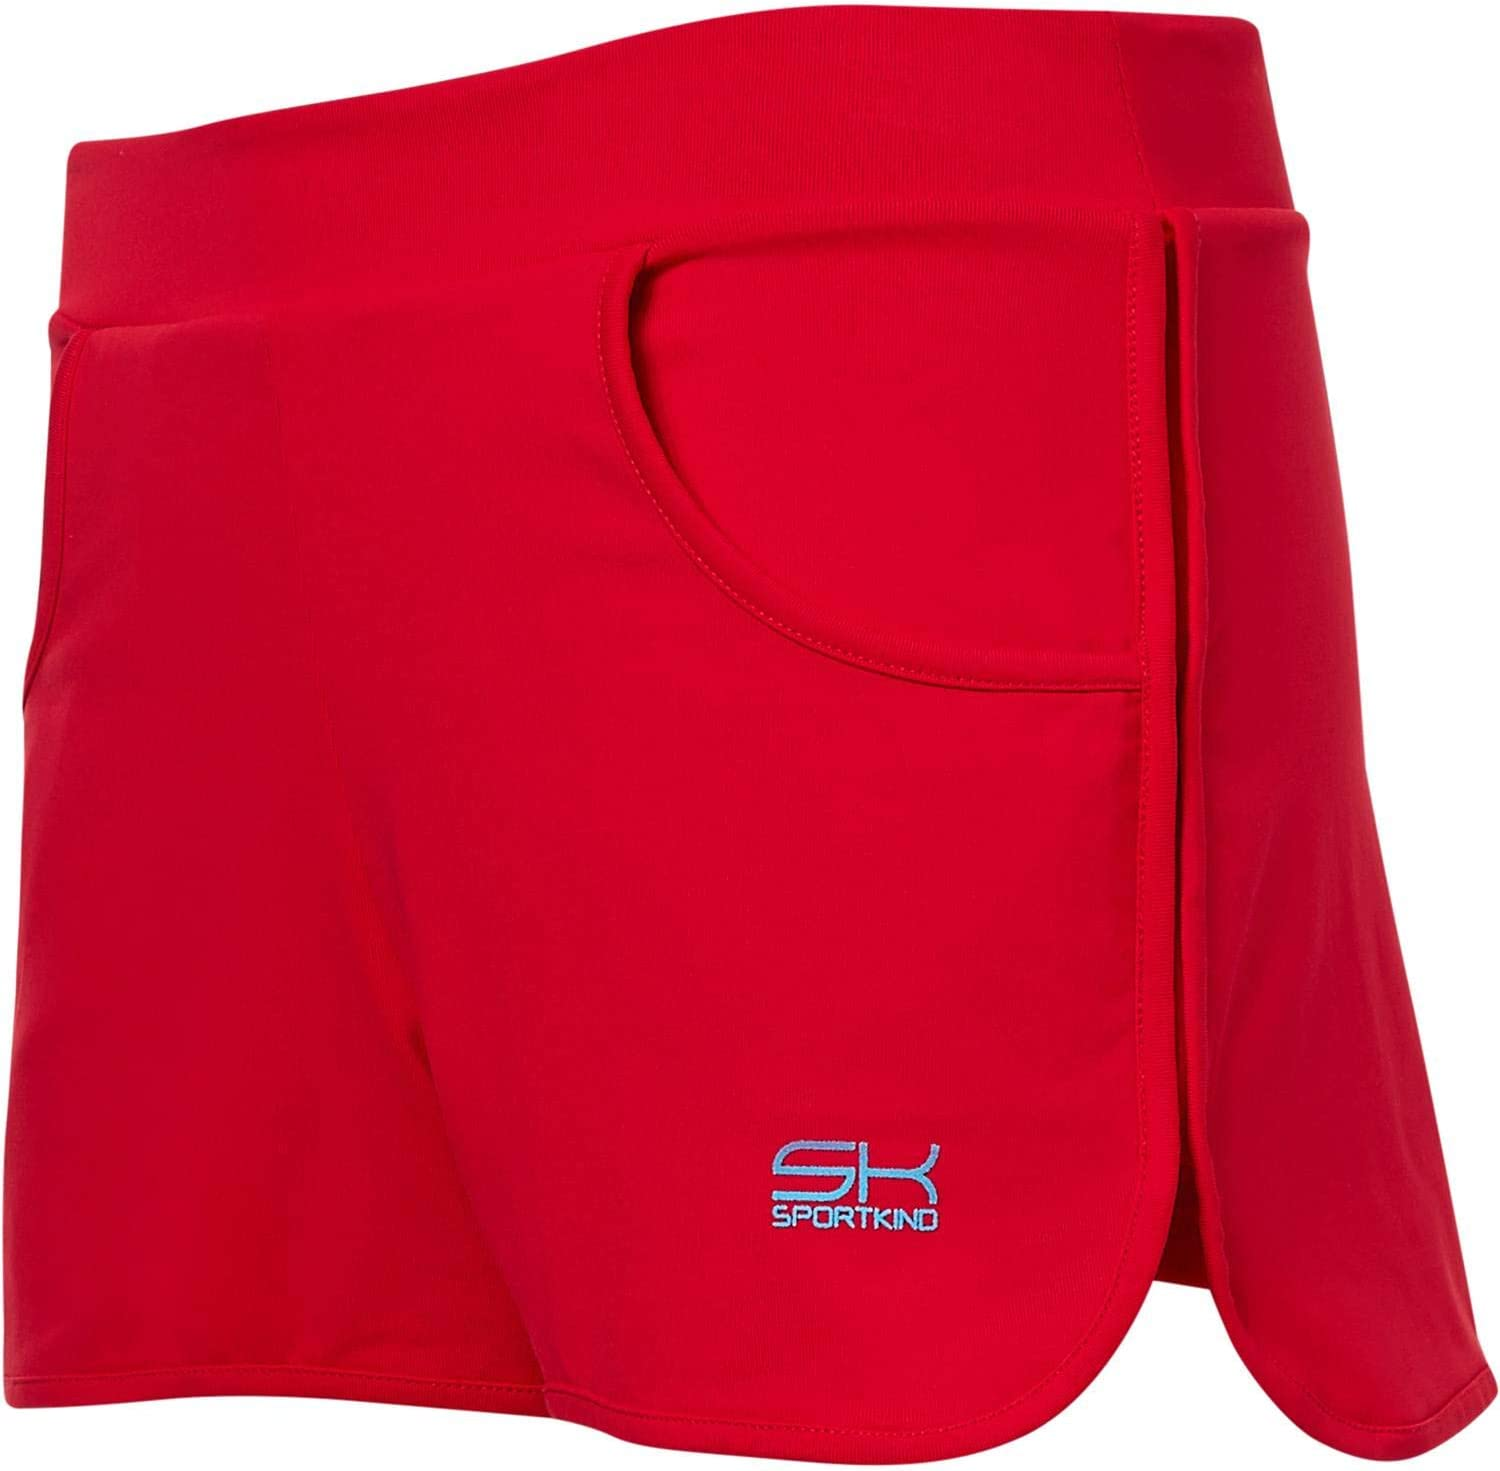 SPORTKIND Girls /& Ladies 2-in-1 Tennis//Volleyball//Sports Shorts with Integrated Shortie